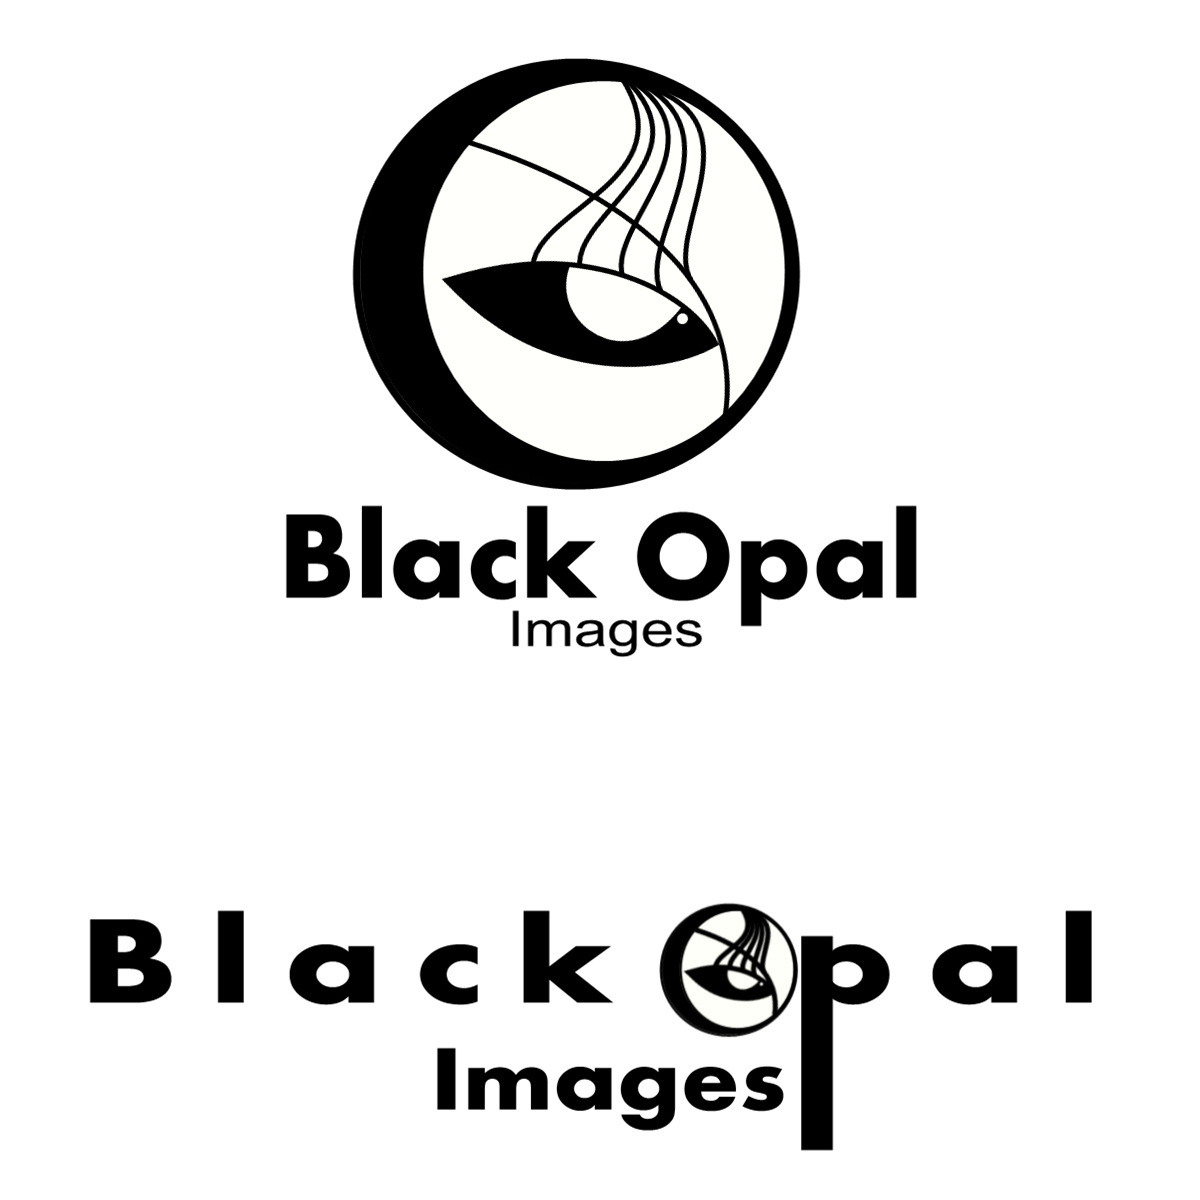 Logo Design by Joseph calunsag Cagaanan - Entry No. 1 in the Logo Design Contest New Logo Design for Black Opal Images.